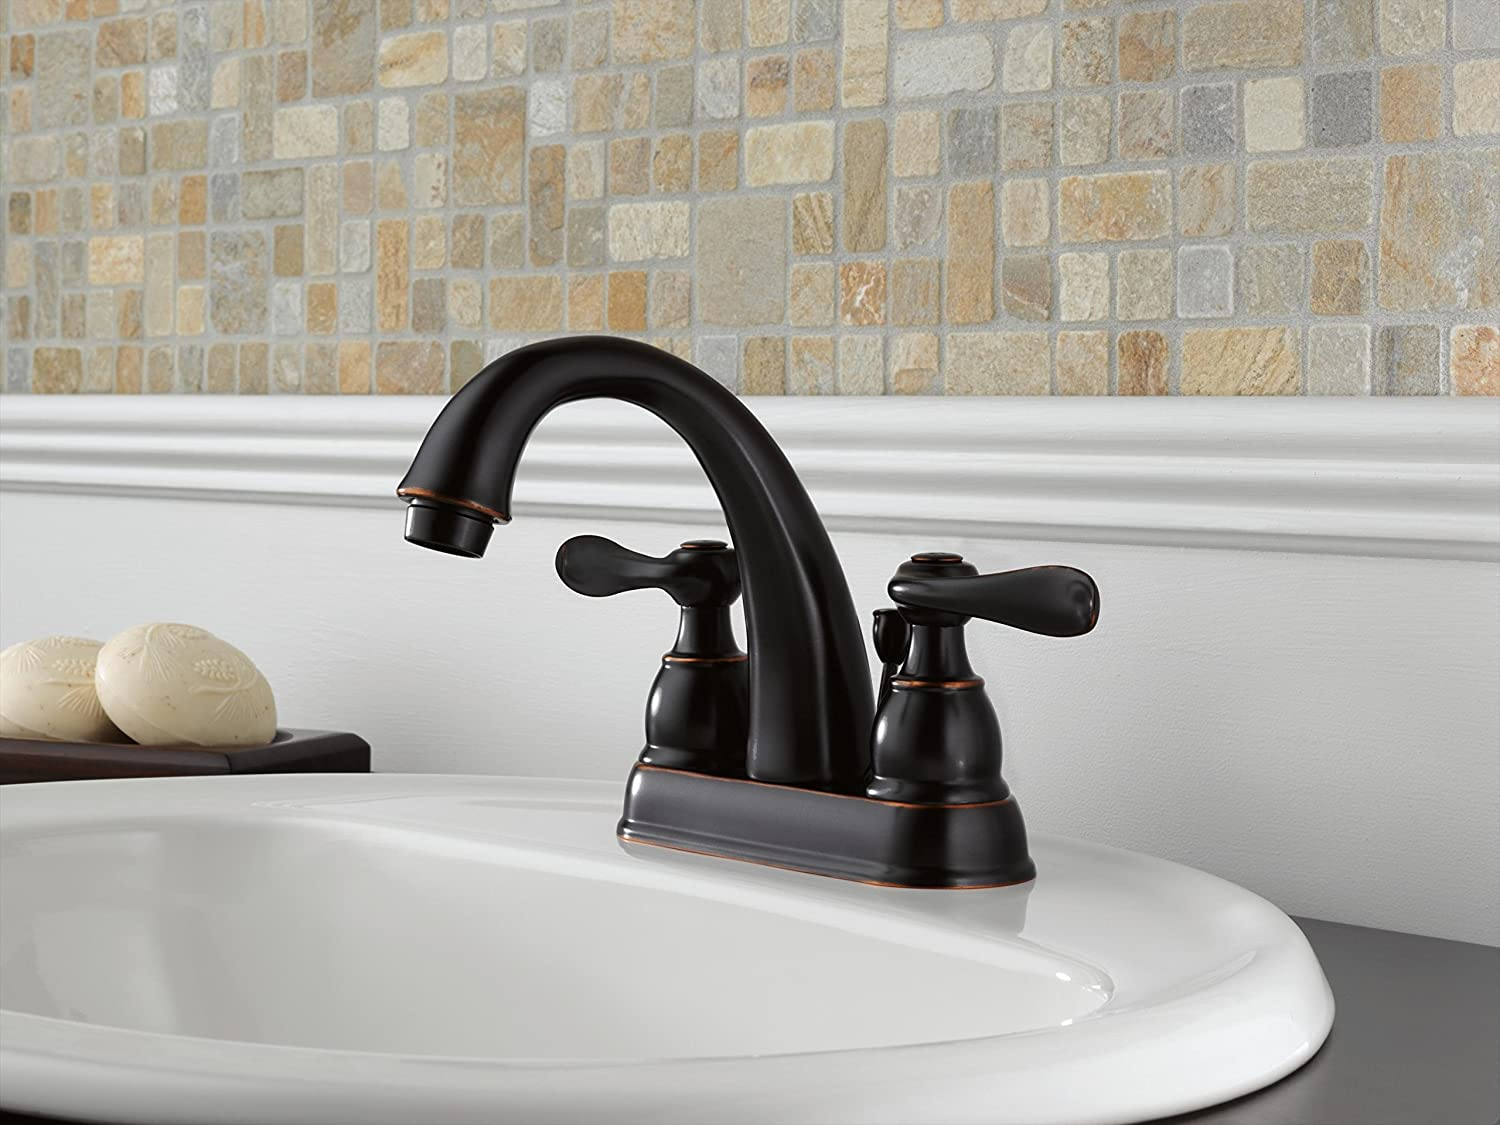 complete the your sebring faucet services bathroom remodeling to guide home styles